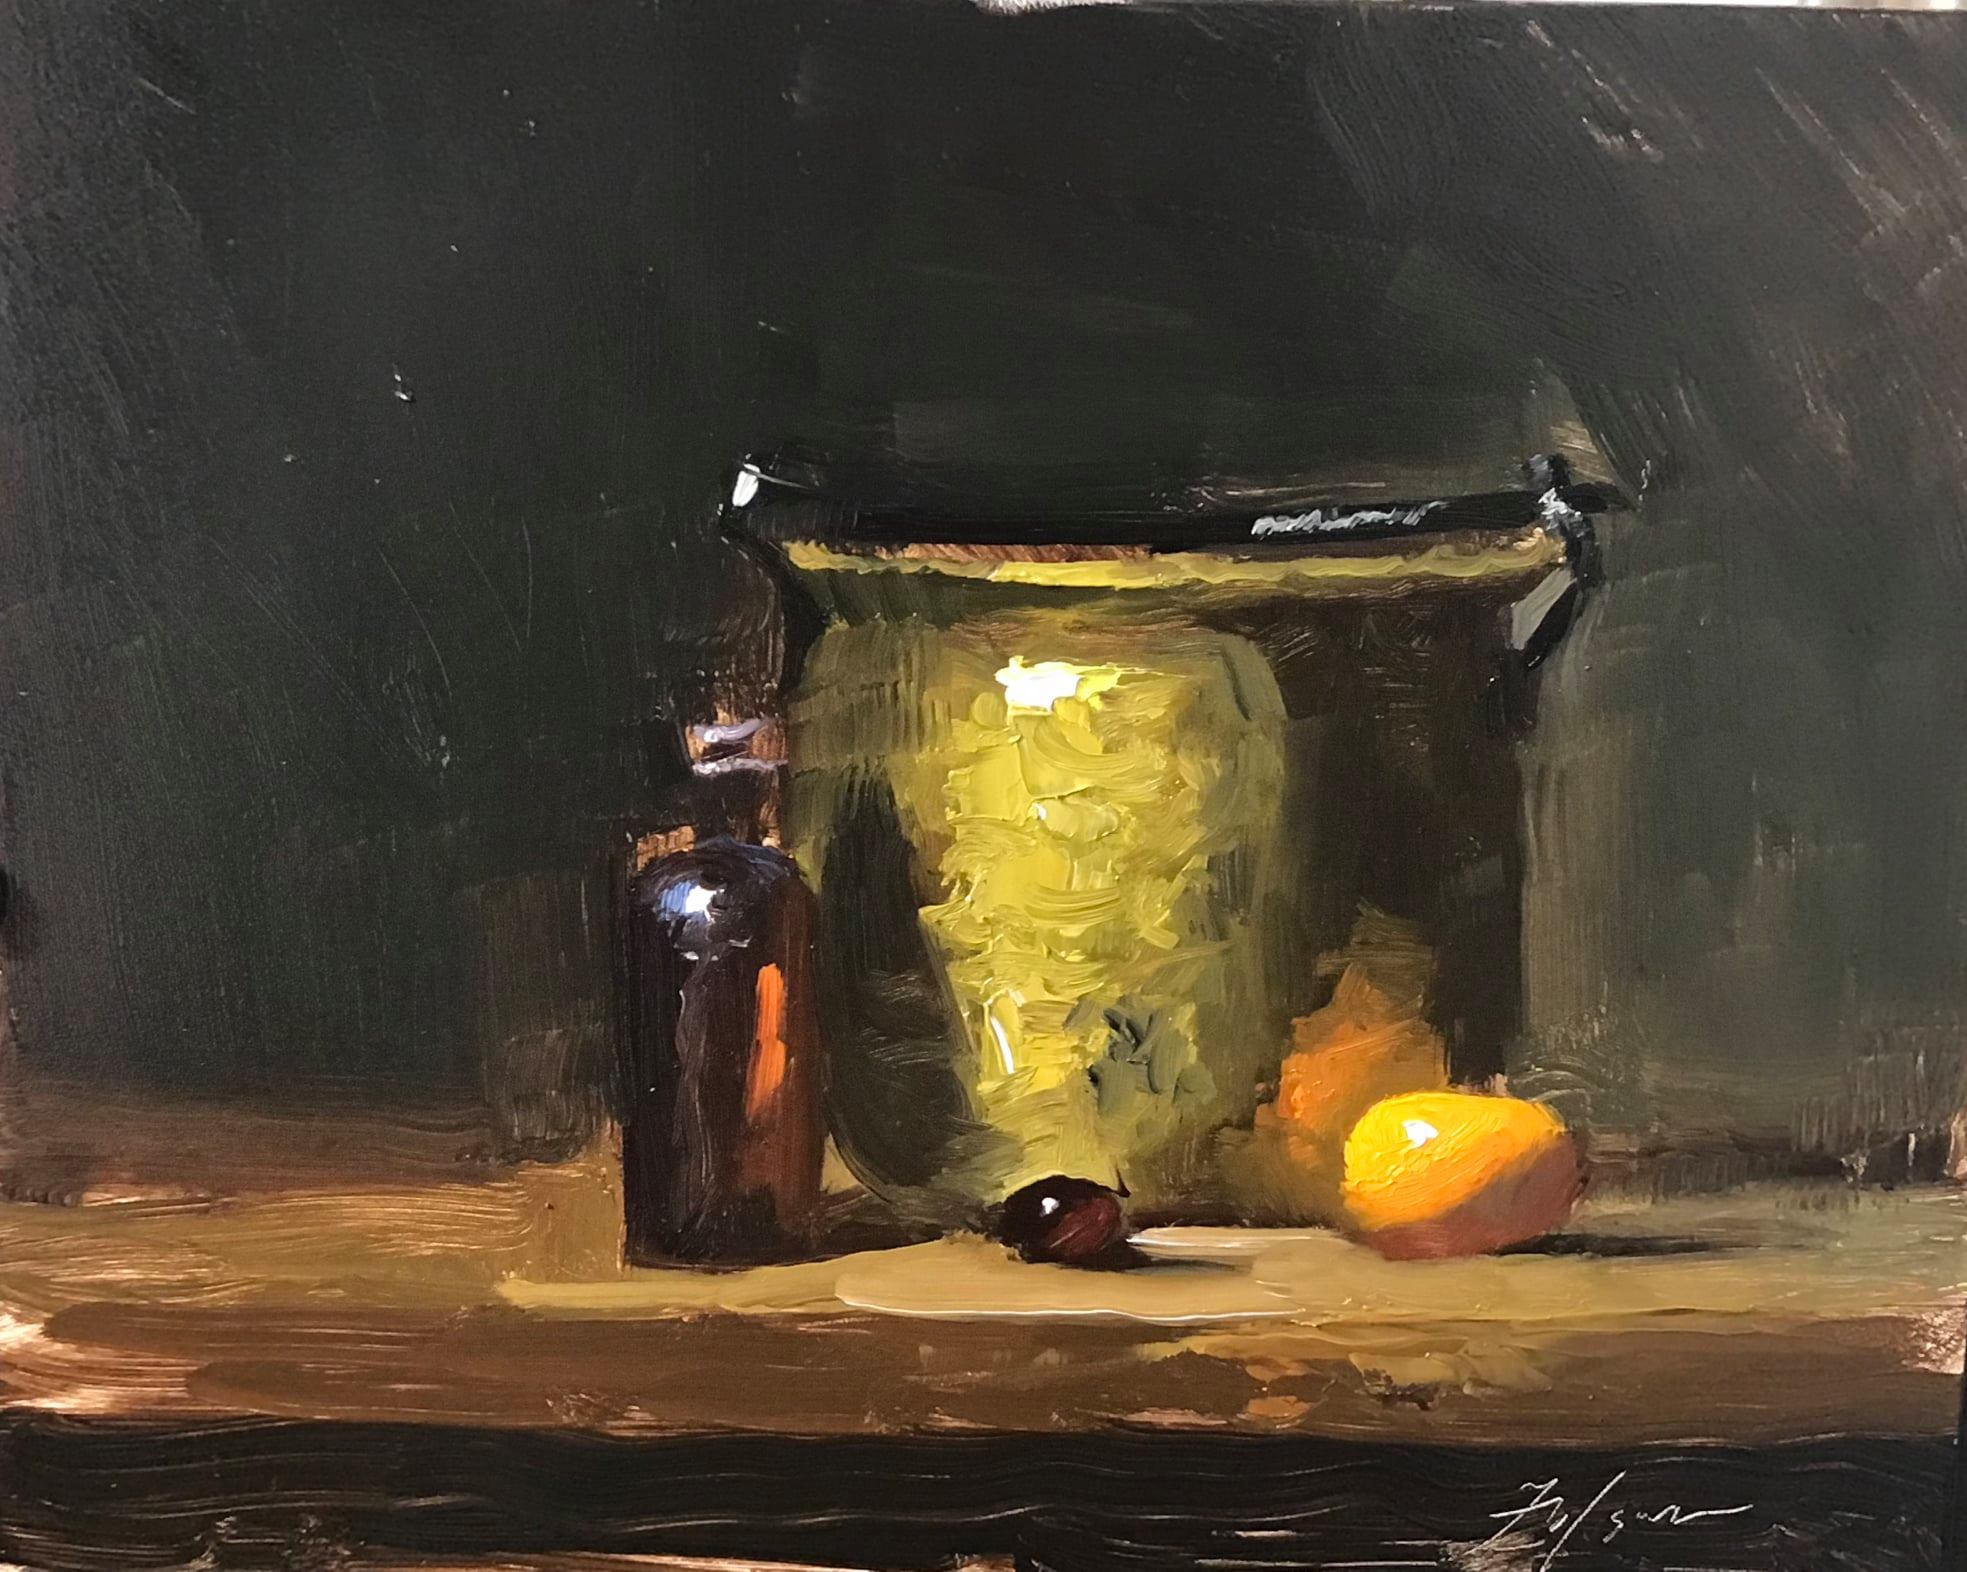 Announcing the 5 Day Still Life Painting Challenge!